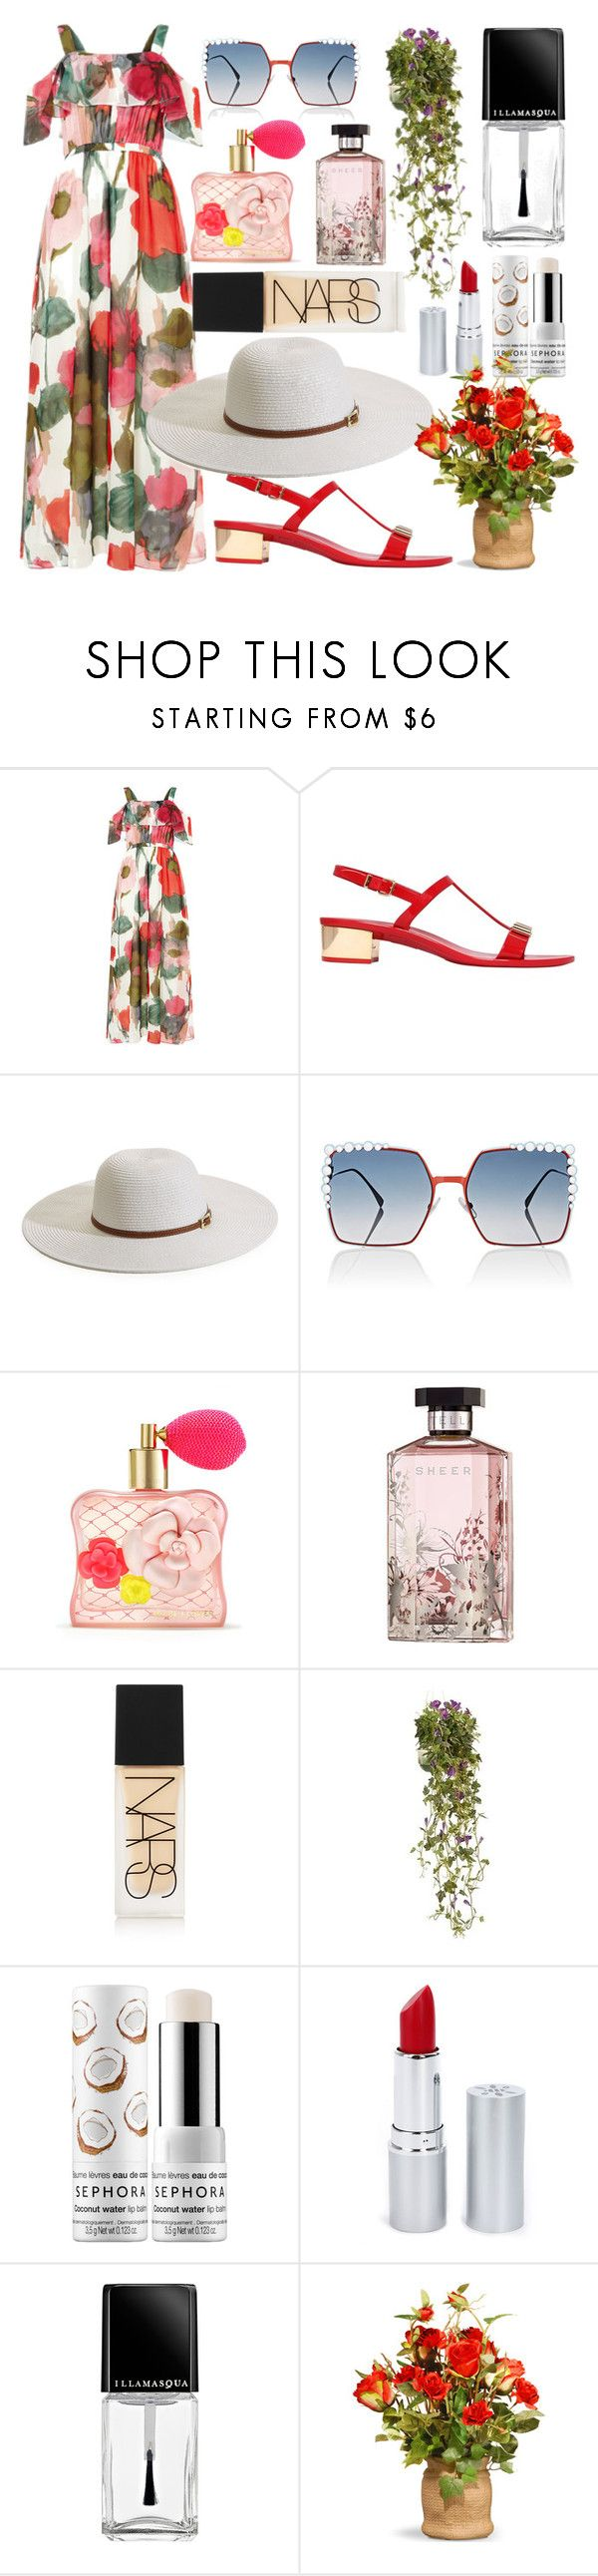 """Untitled #453"" by ngkhhuynstyle ❤ liked on Polyvore featuring Phase Eight, Salvatore Ferragamo, Melissa Odabash, Fendi, Victoria's Secret, STELLA McCARTNEY, NARS Cosmetics, National Tree Company, Sephora Collection and HoneyBee Gardens"